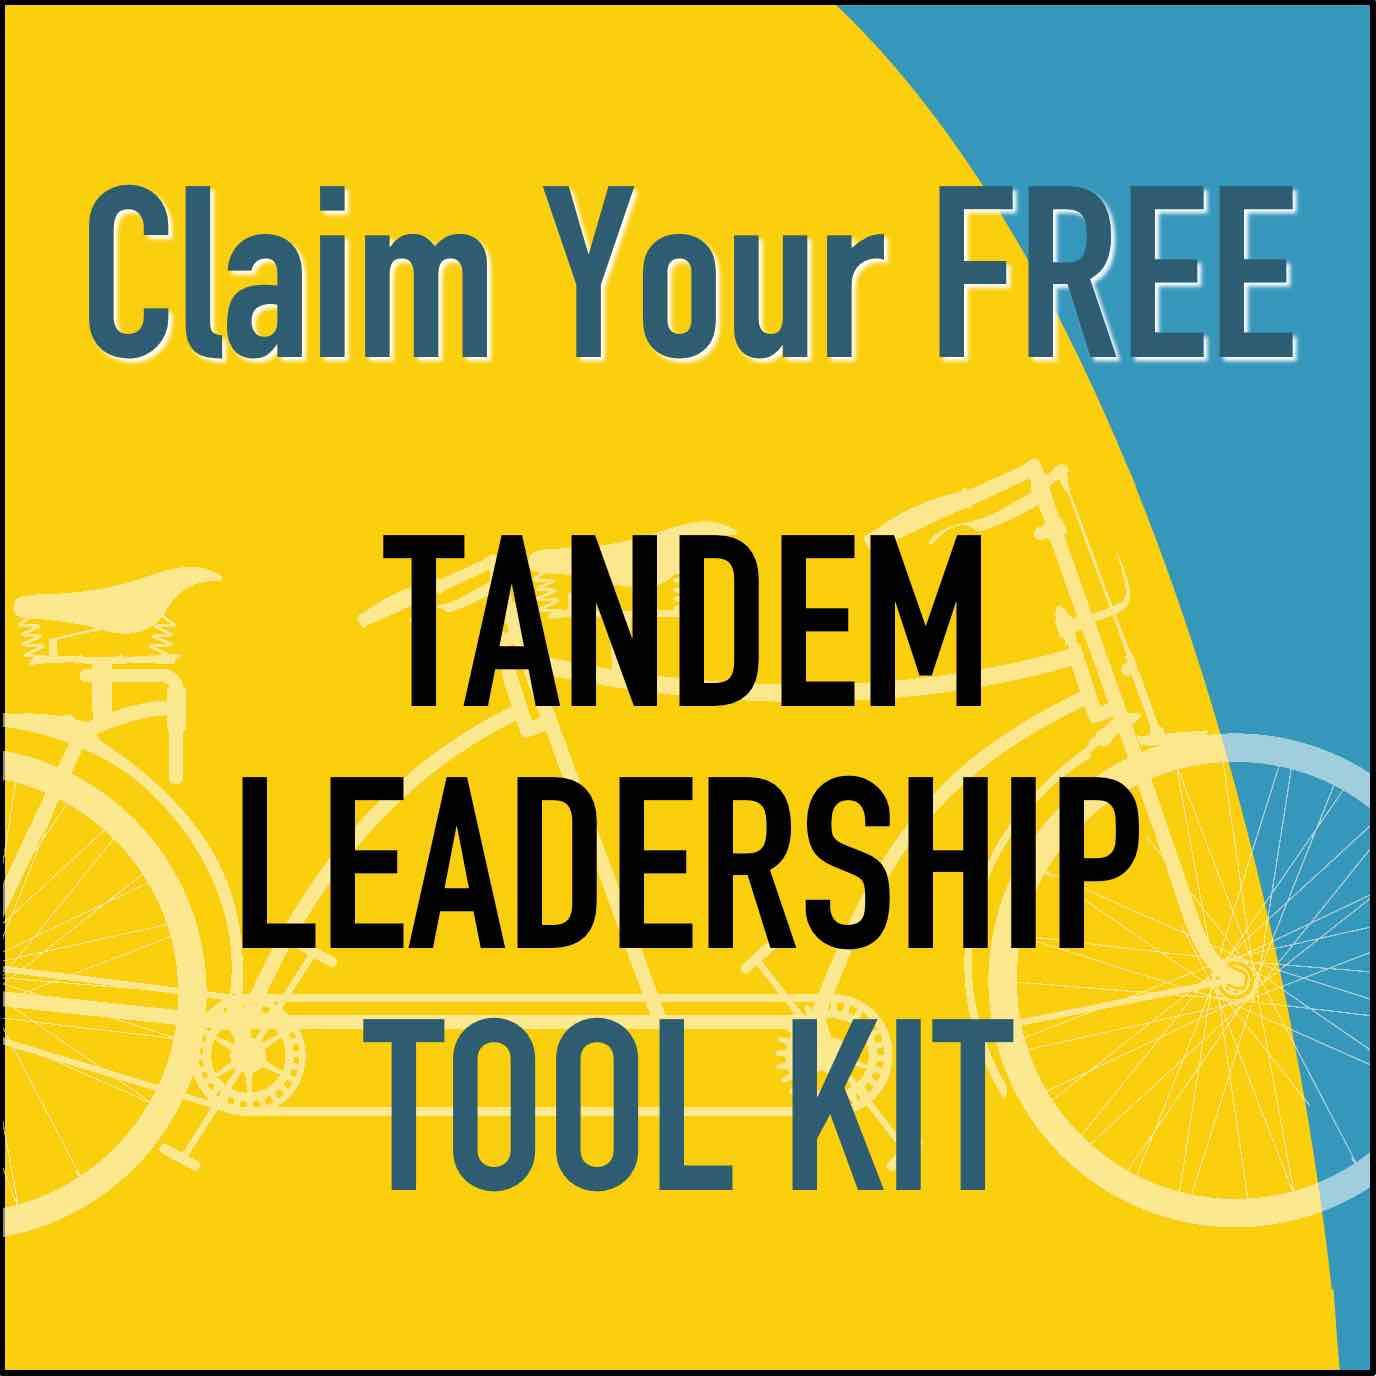 Tandem Leadership Tool Kit by Gina Catalano